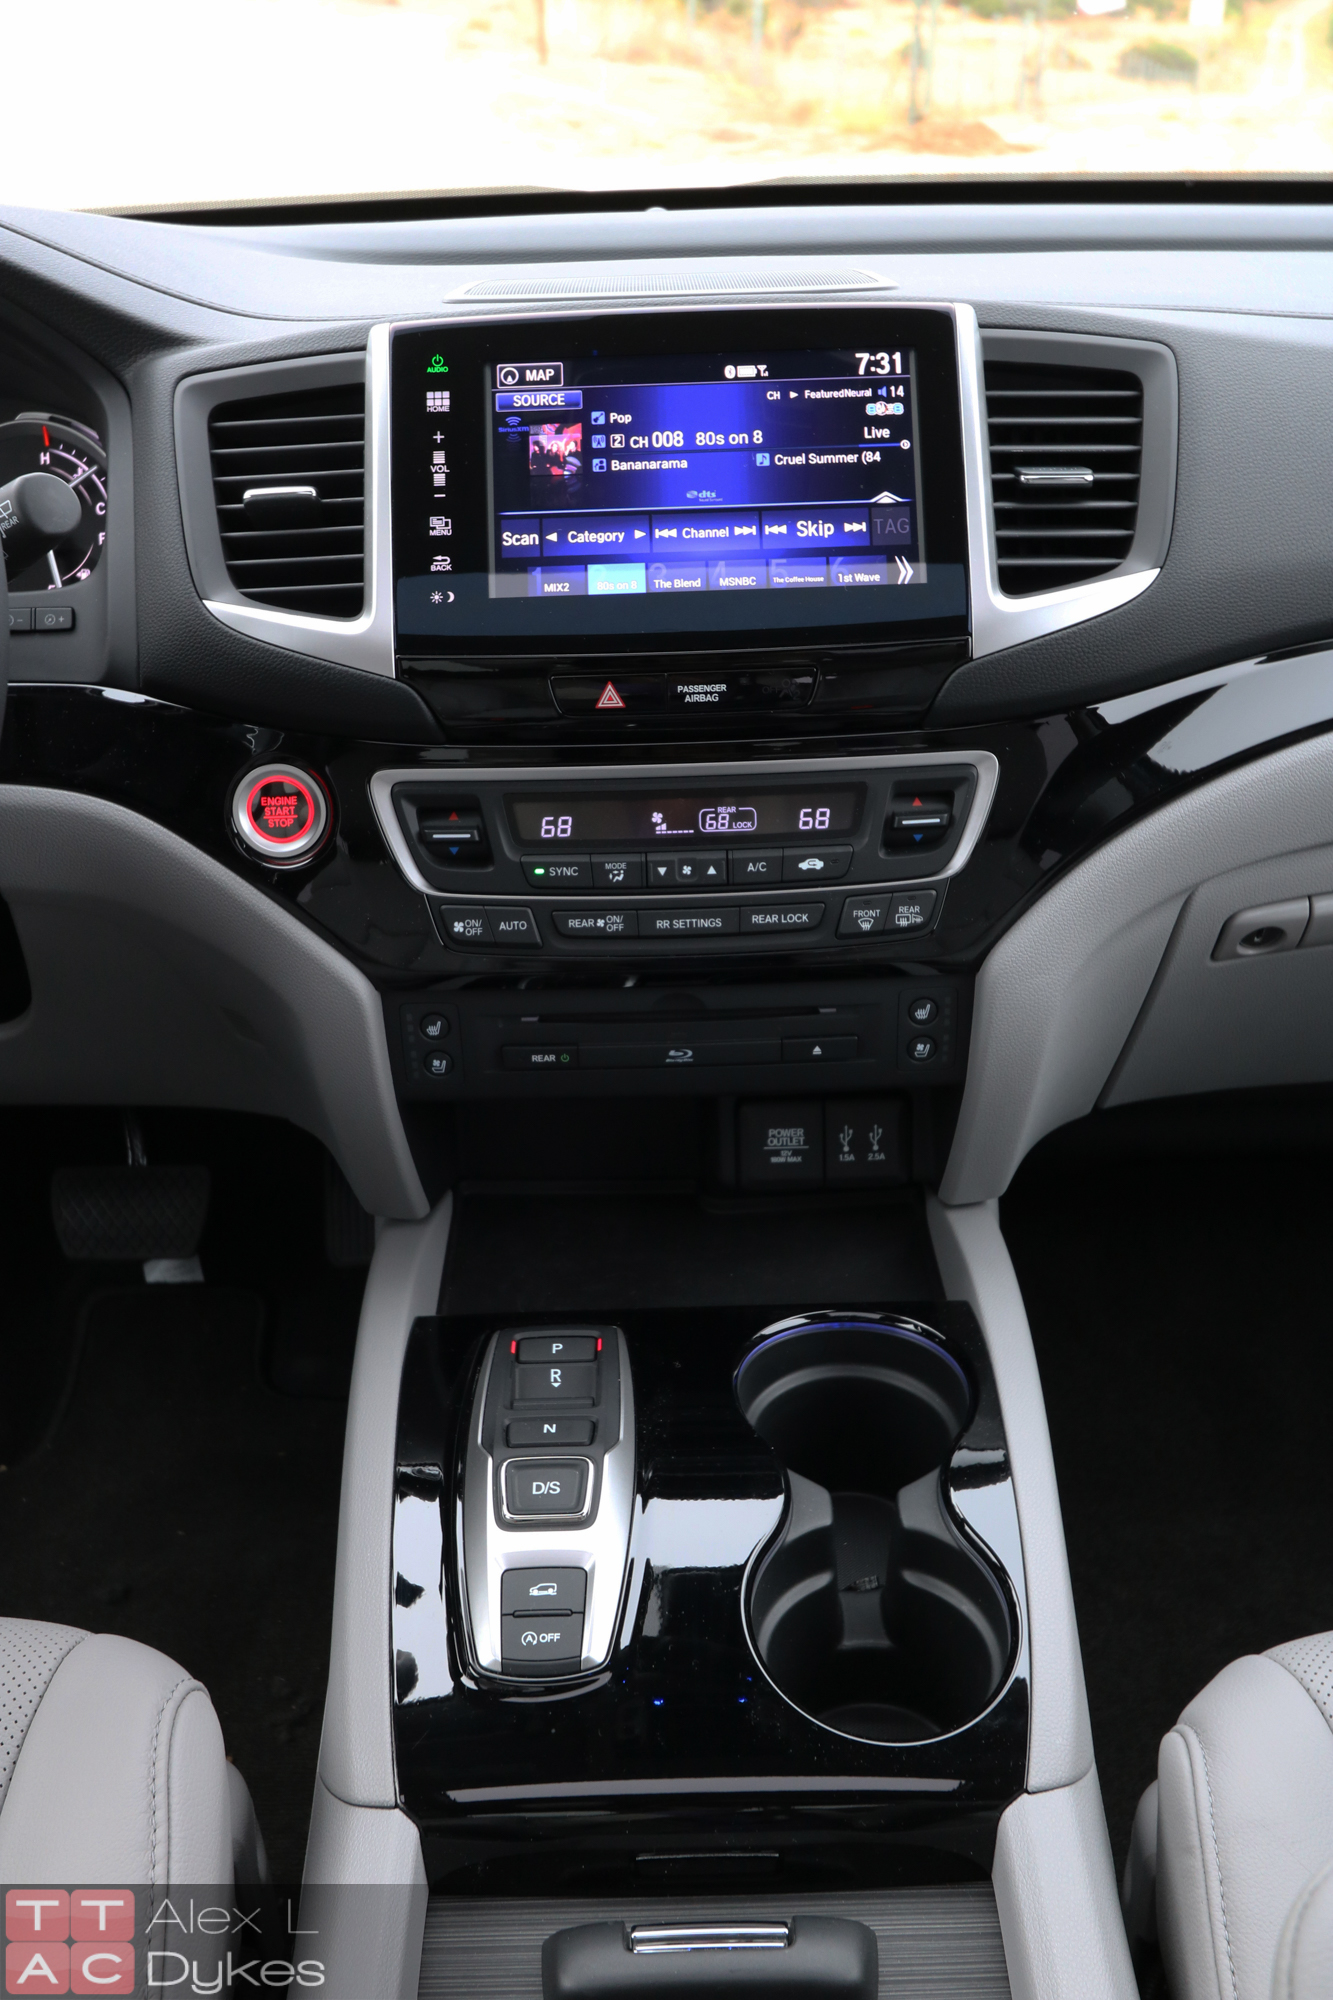 2016 Honda Pilot Interior-025 - The Truth About Cars